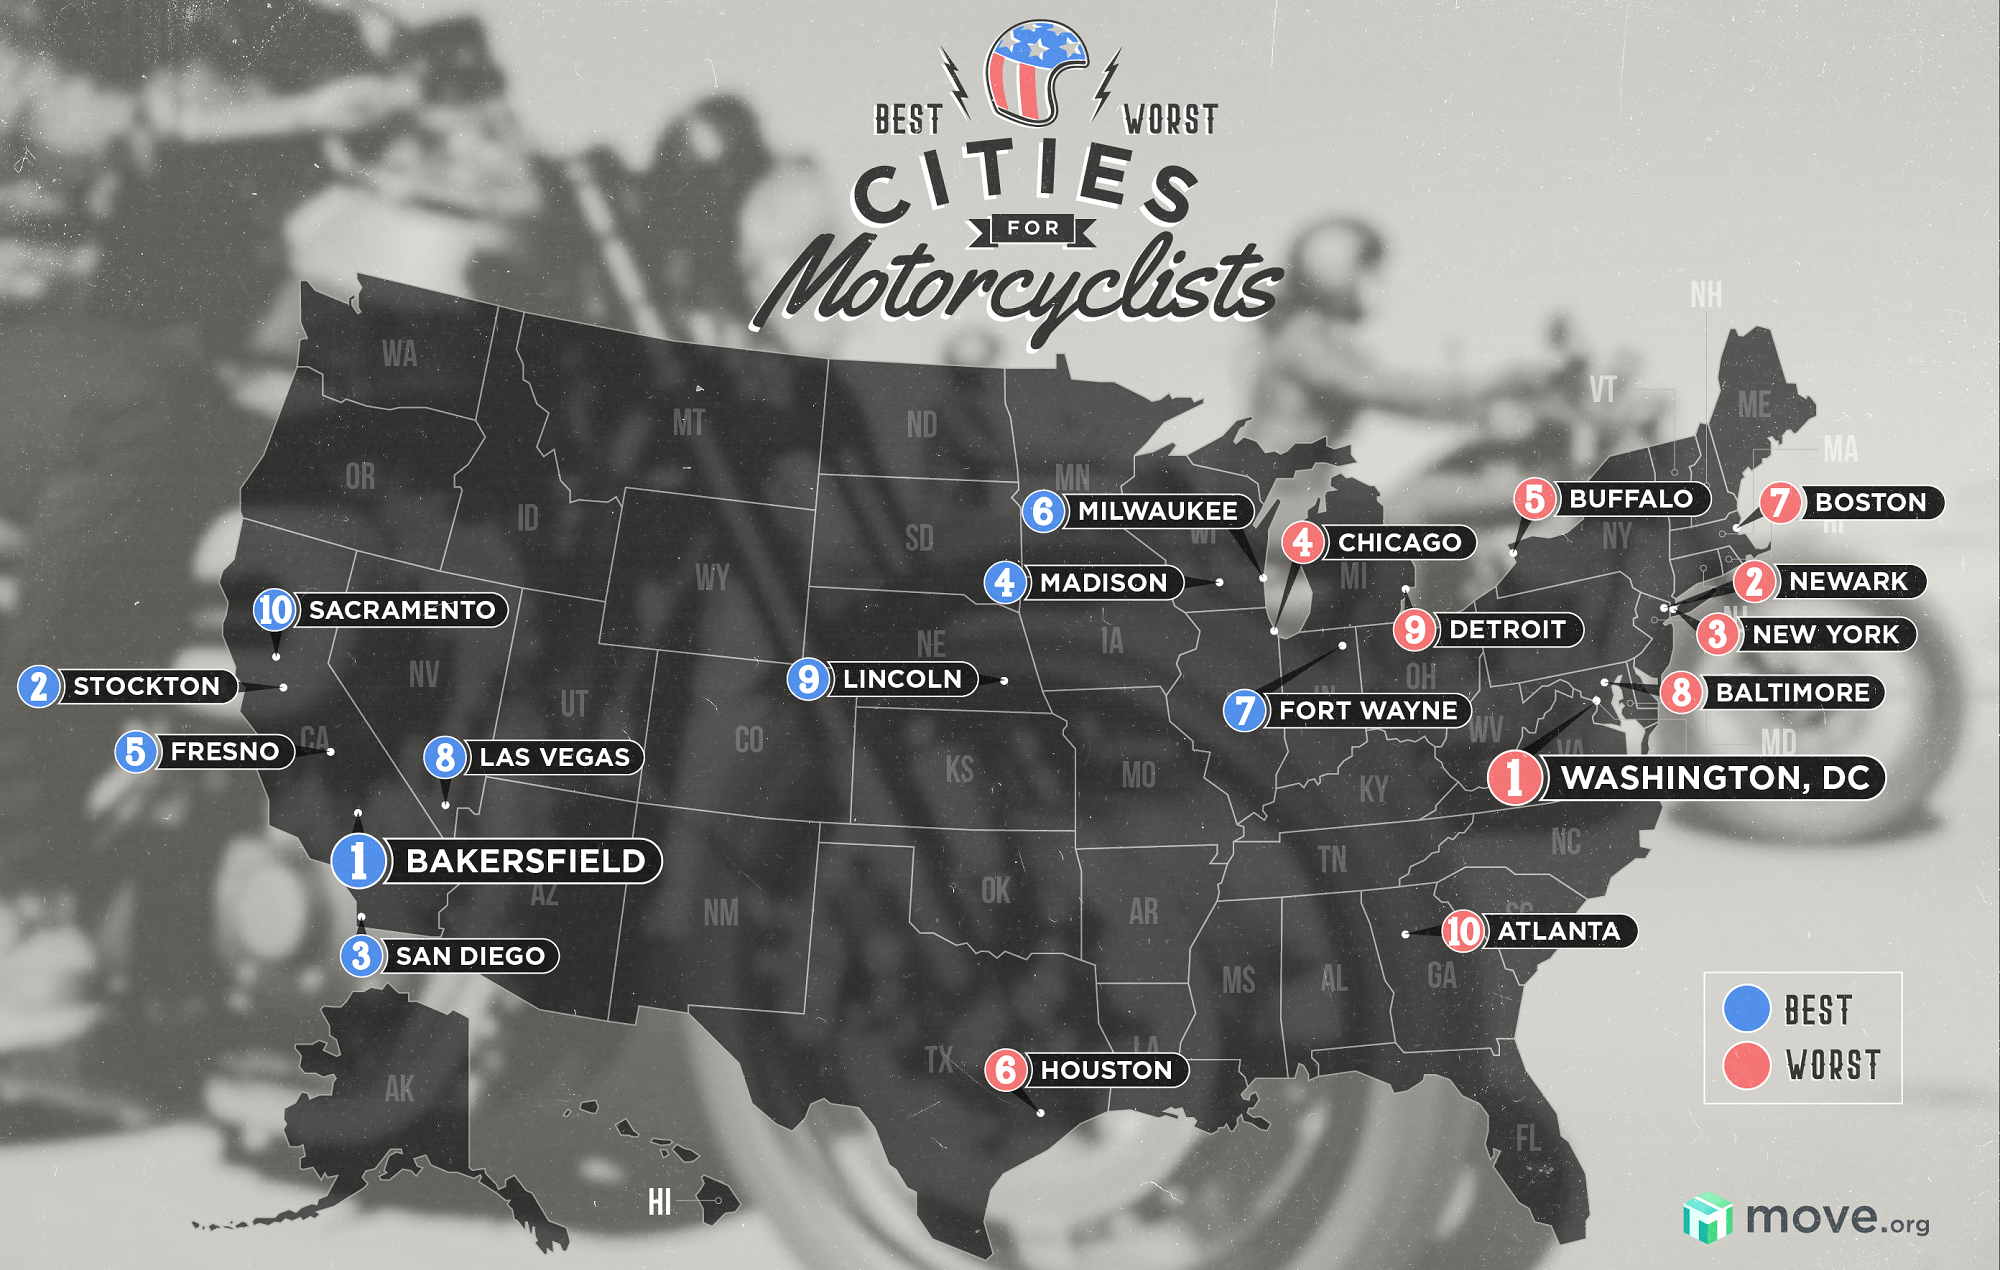 Map of the best and worst cities for motorcyclists